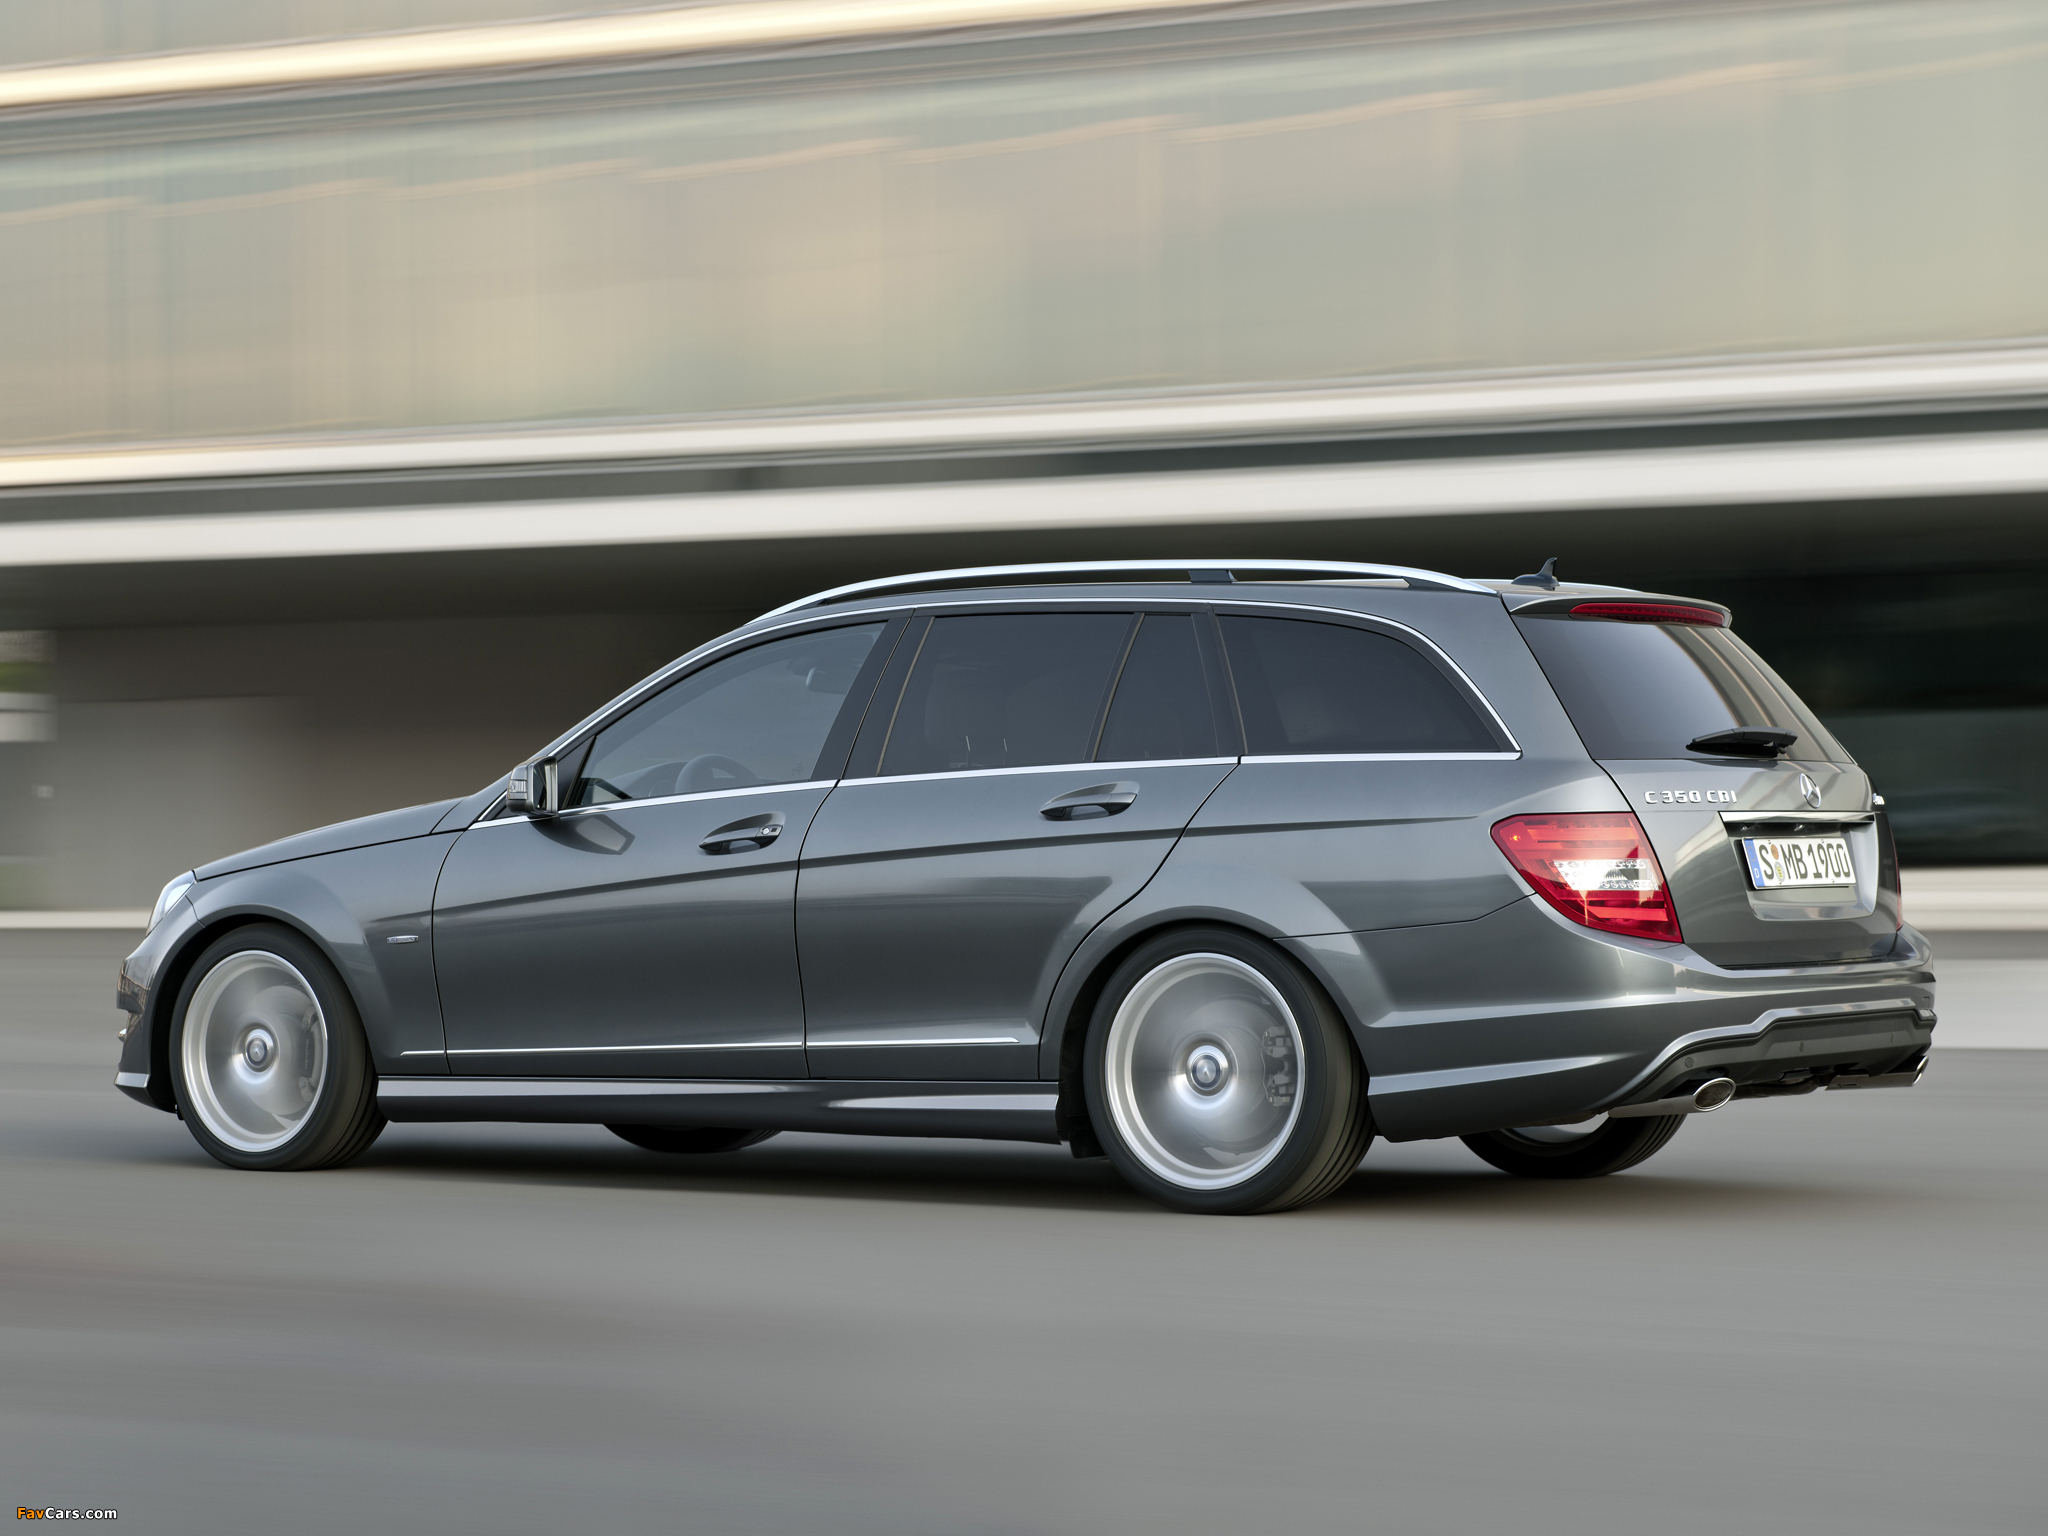 Mercedes-Benz C 350 CDI 4MATIC AMG Sports Package Estate (S204) 2011 images (2048 x 1536)